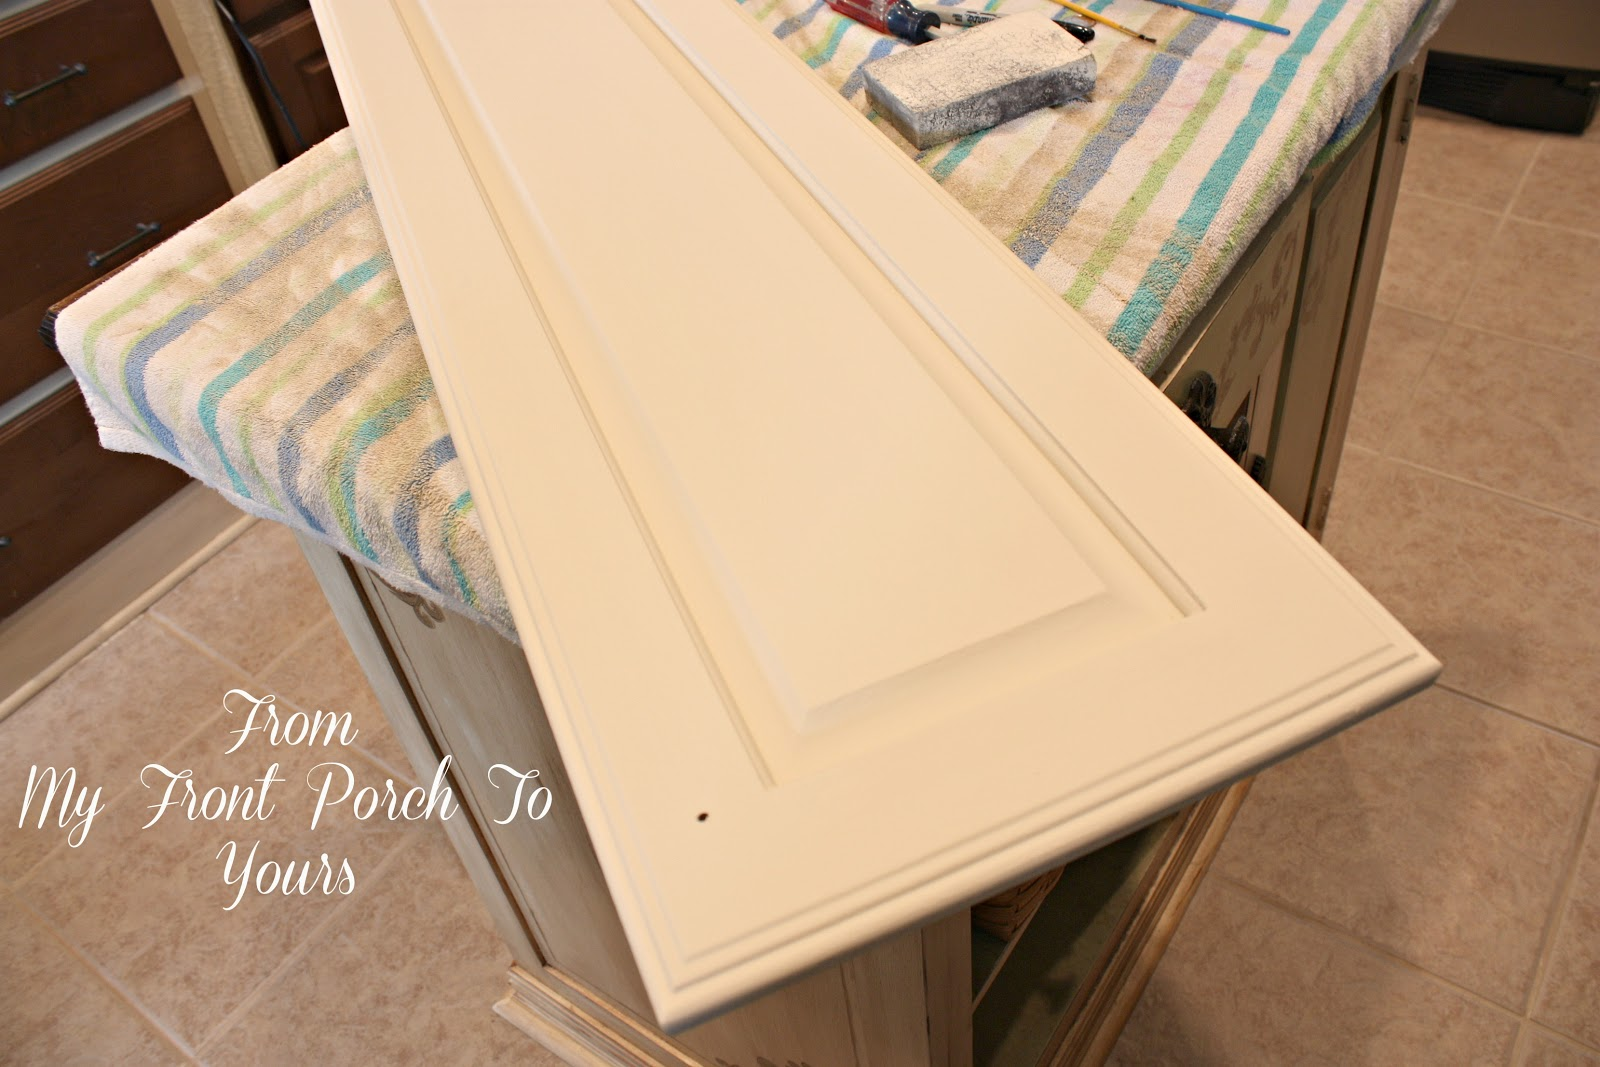 From My Front Porch To Yours Kitchen Cabinet Painting Tutorial